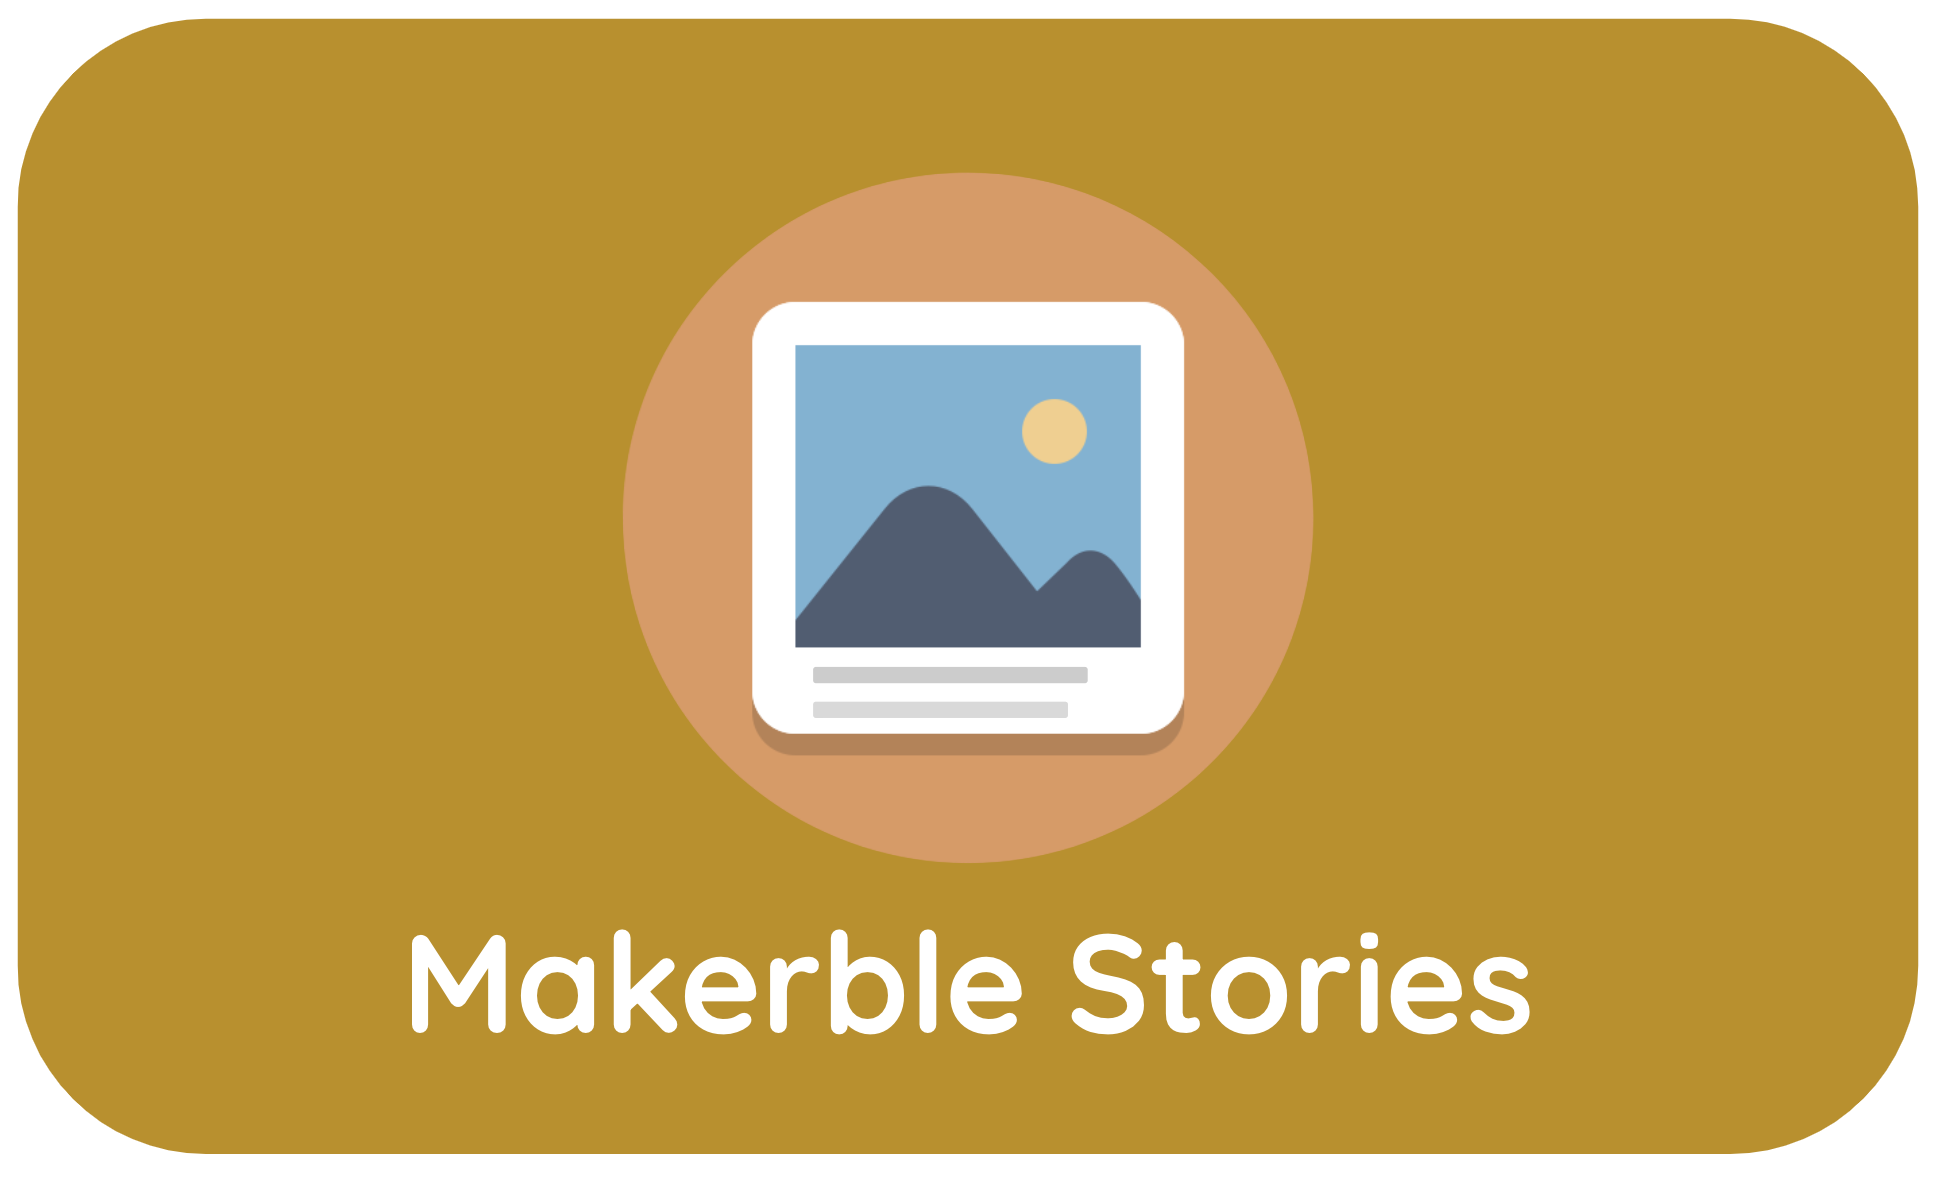 makerble stories logo.png